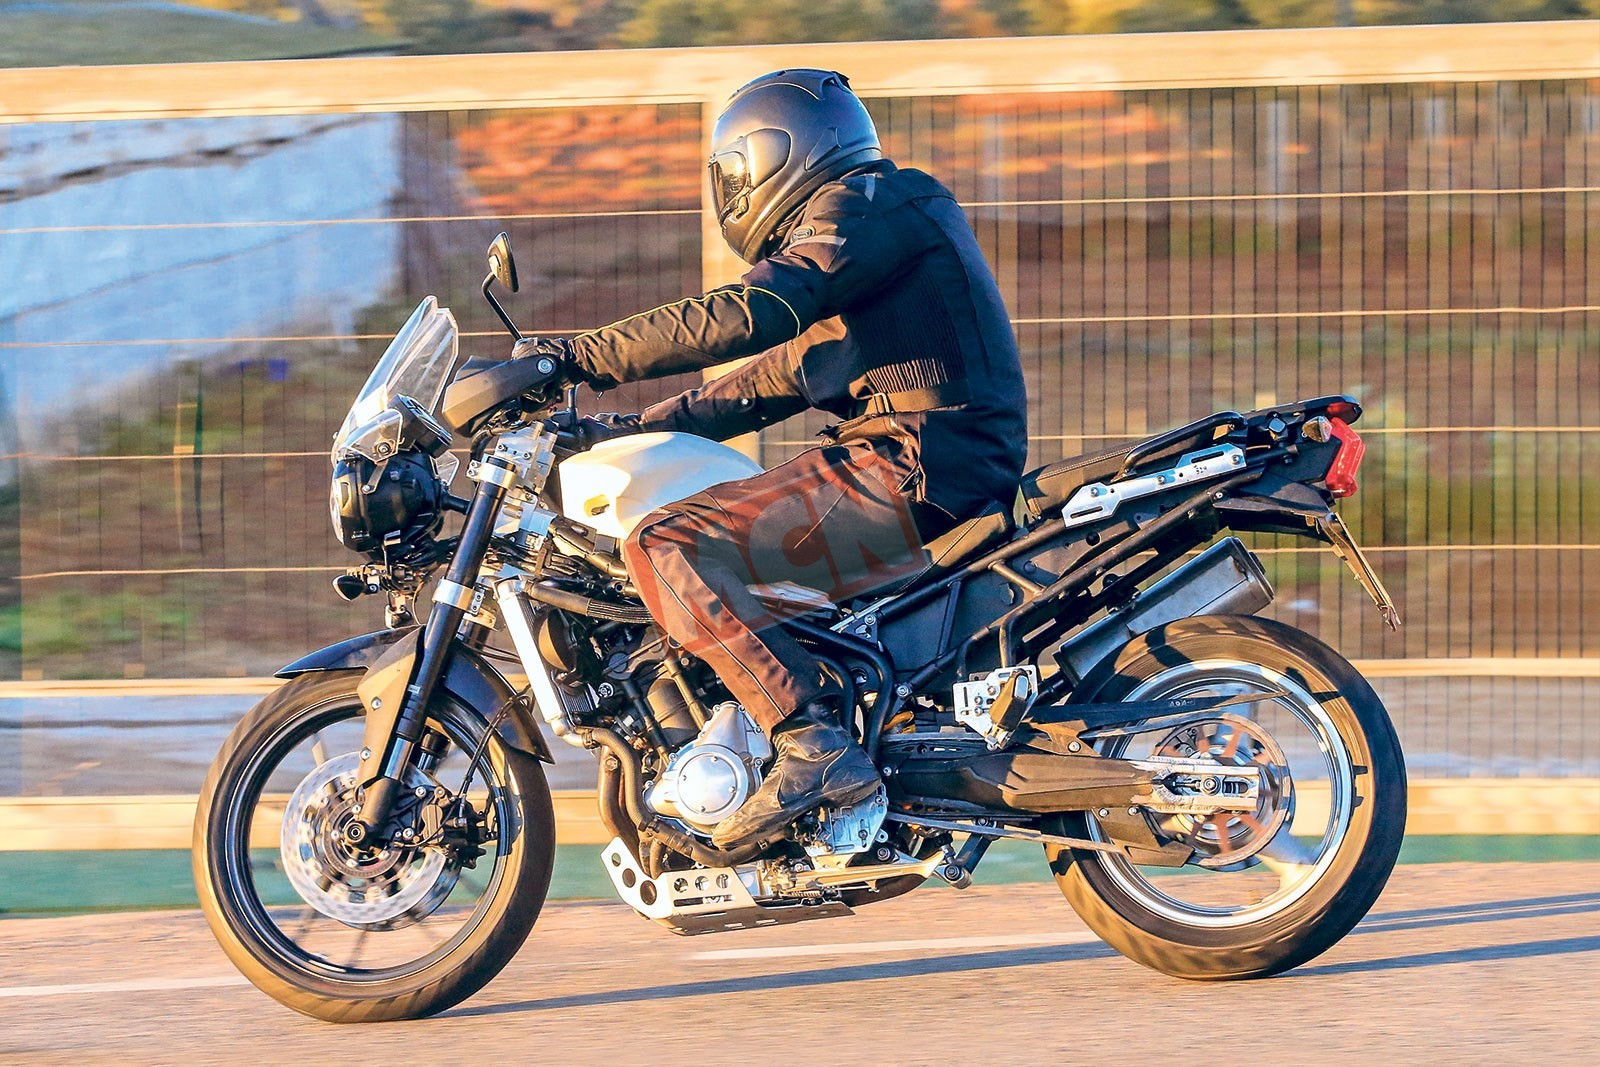 Triumph-Motorcycles-Next-Gen-Middleweight-Tiger-1